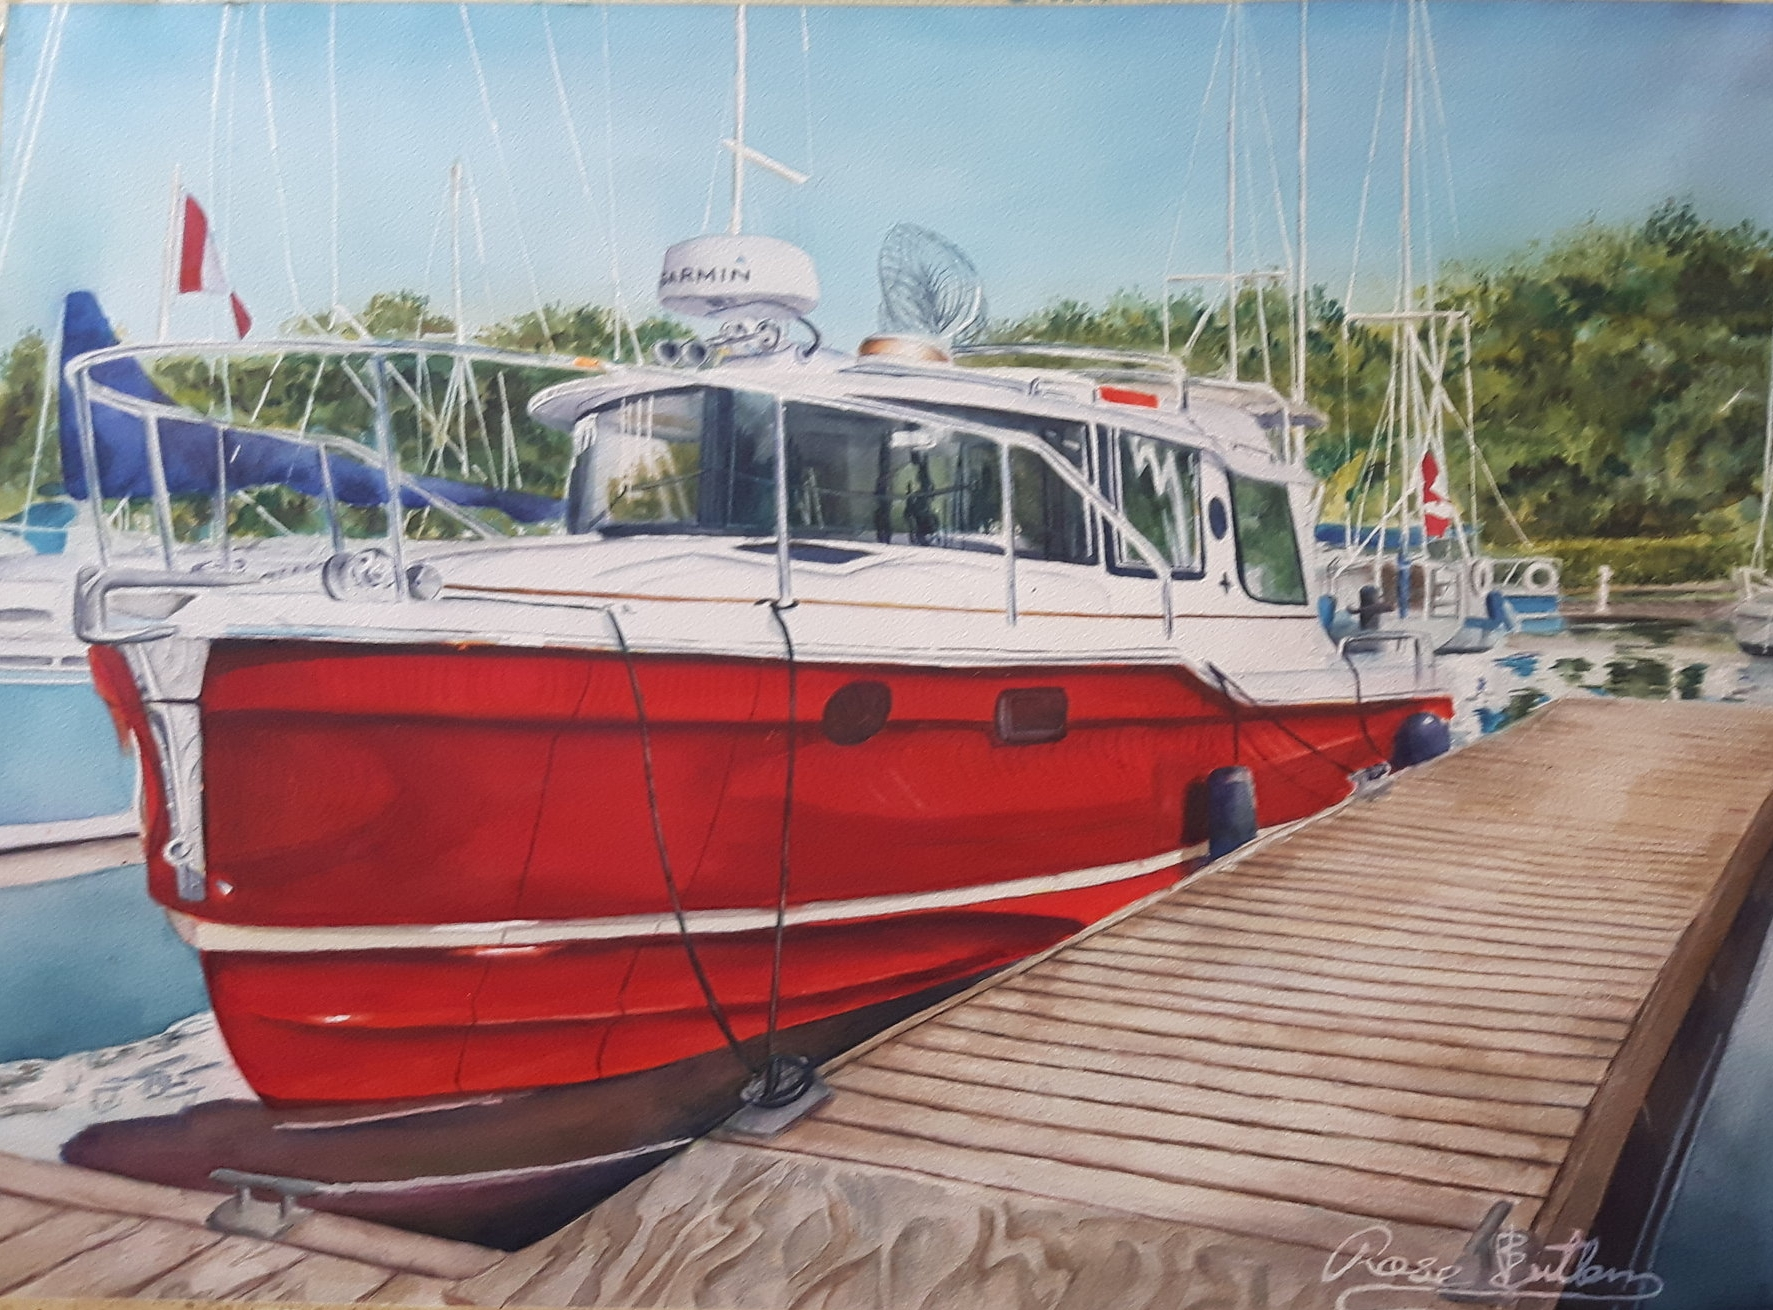 Finished boat painting